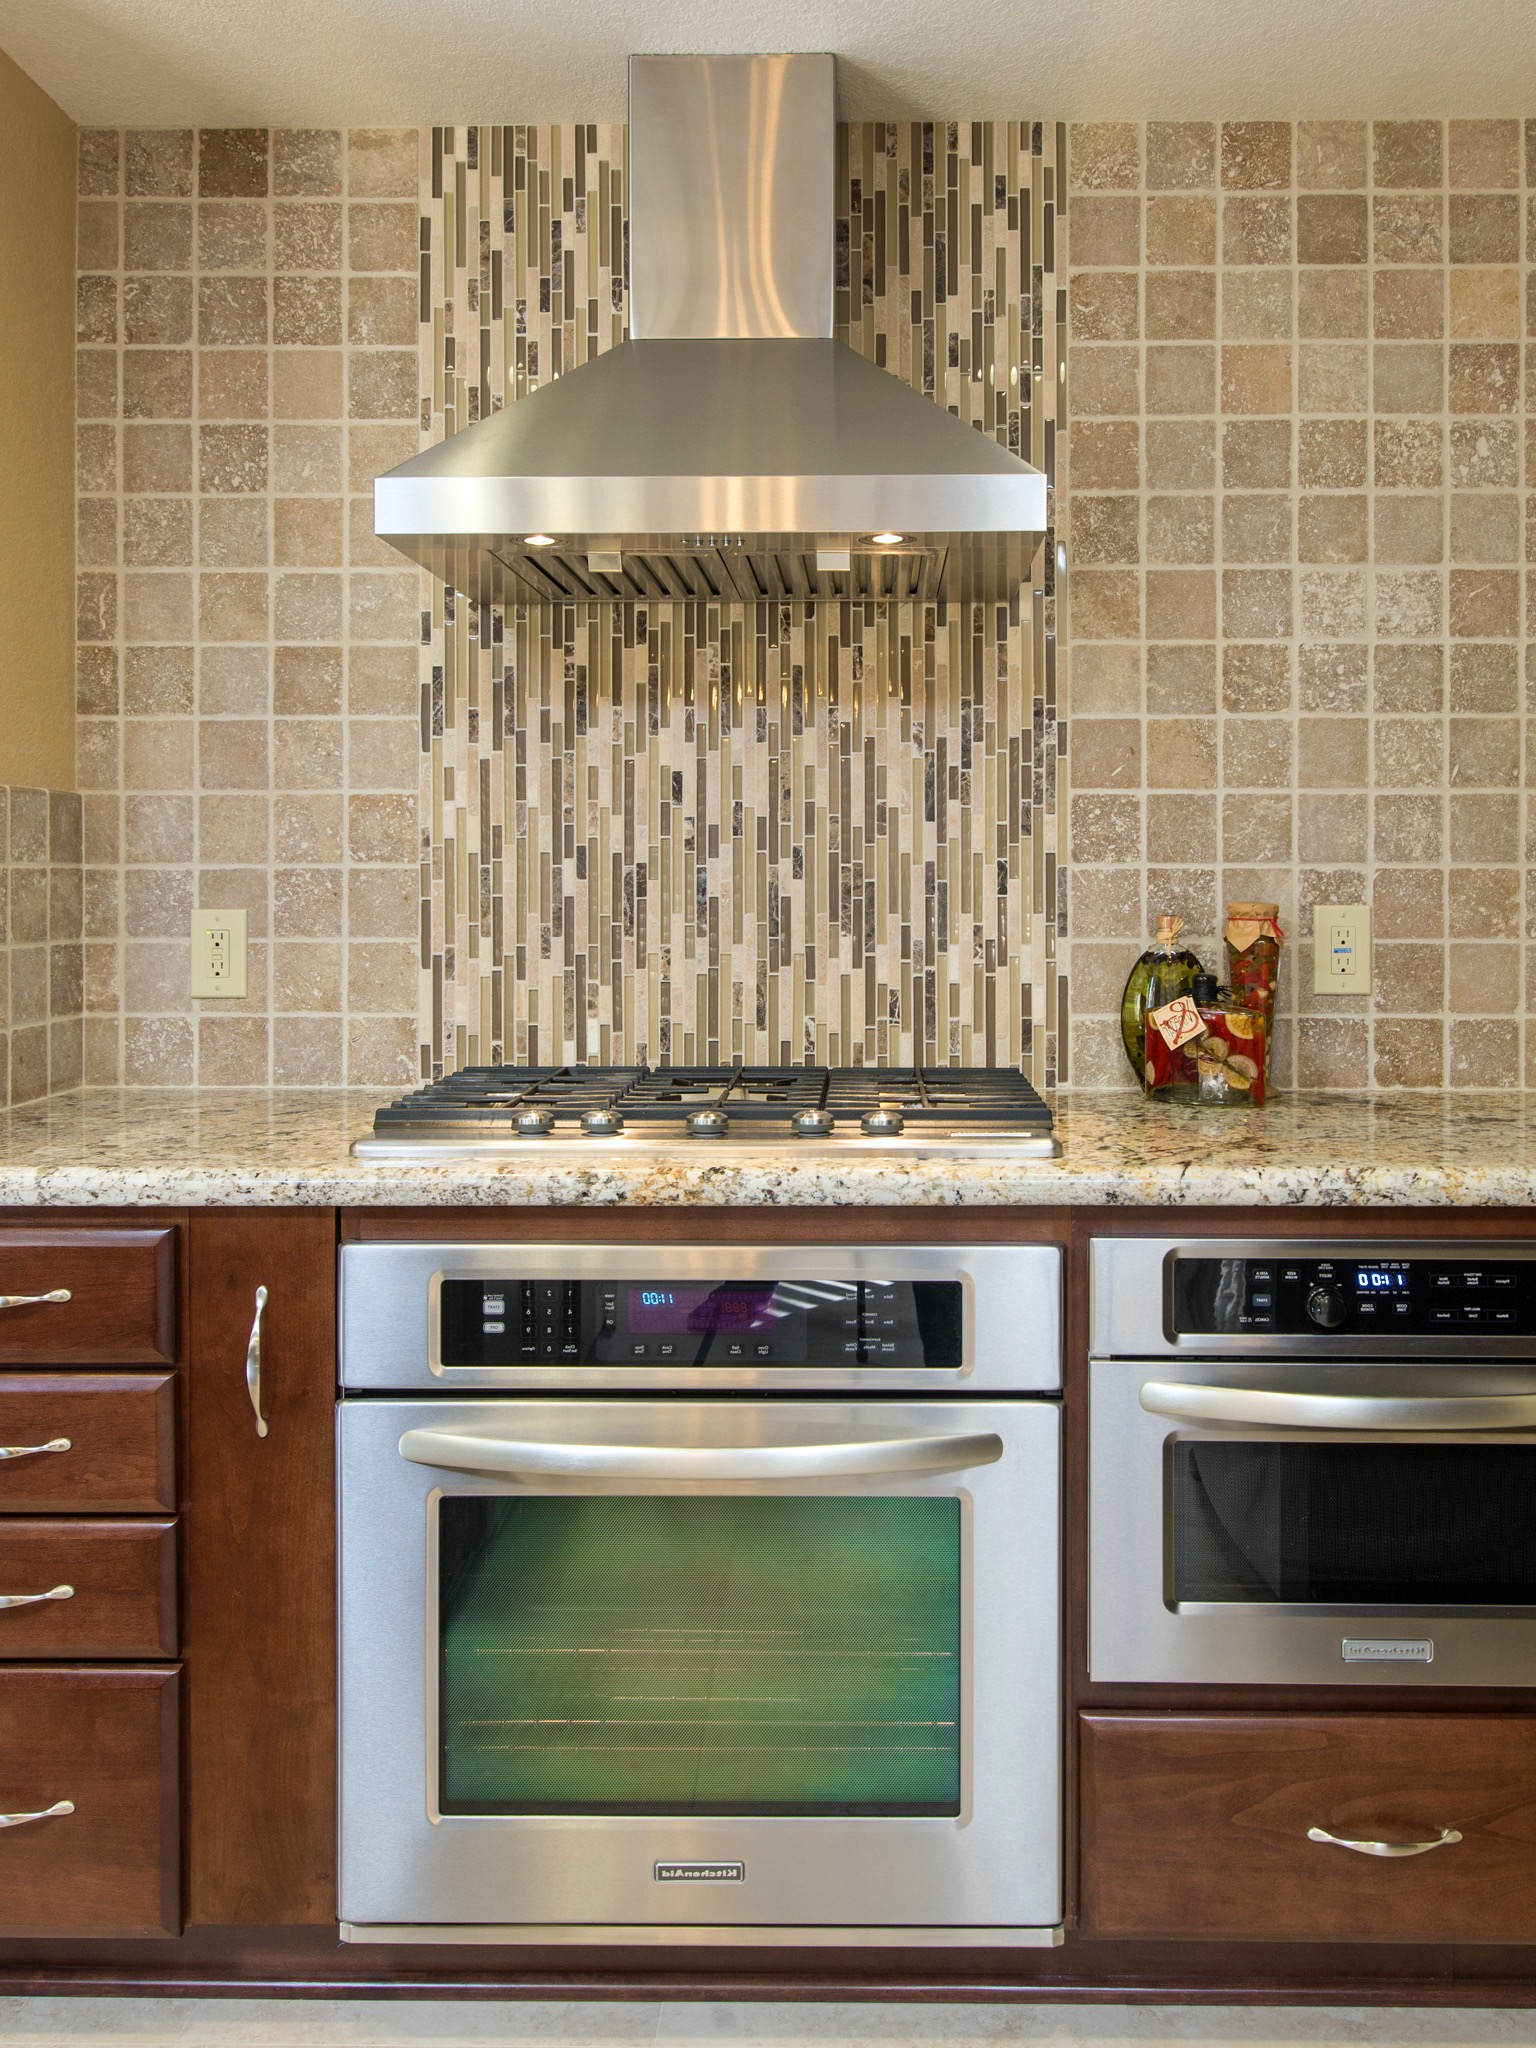 Vertical Tile Backsplash (Image 30 of 32)